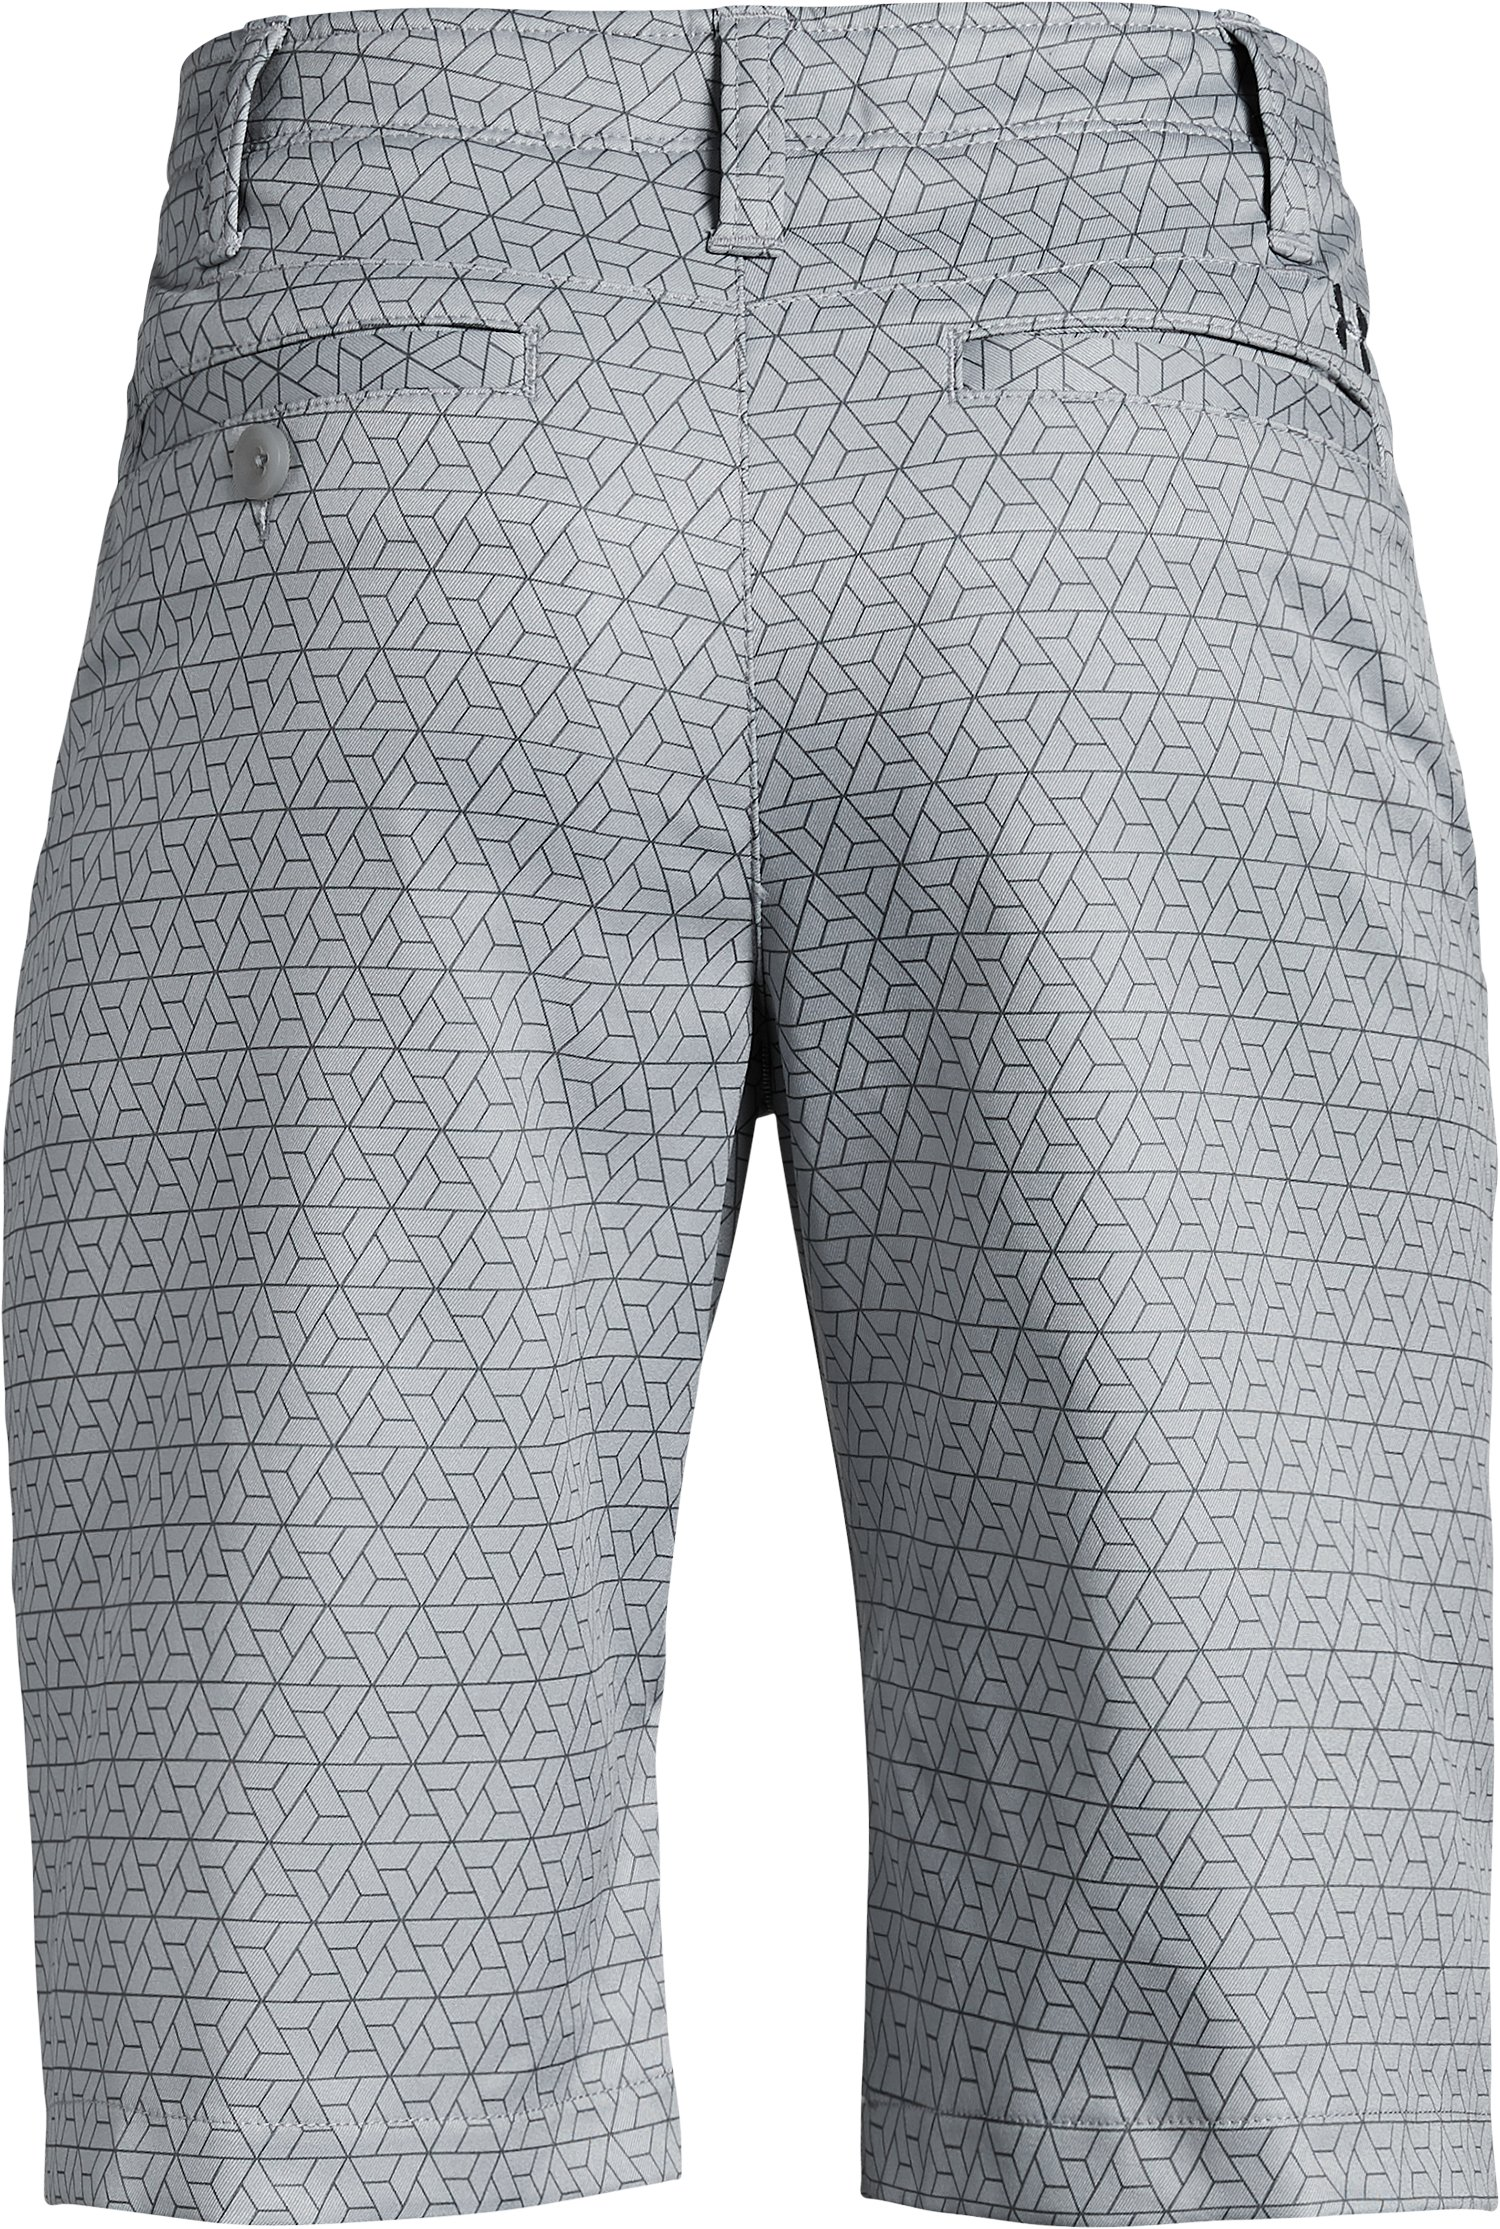 Boys' UA Match Play Printed Shorts, Steel,